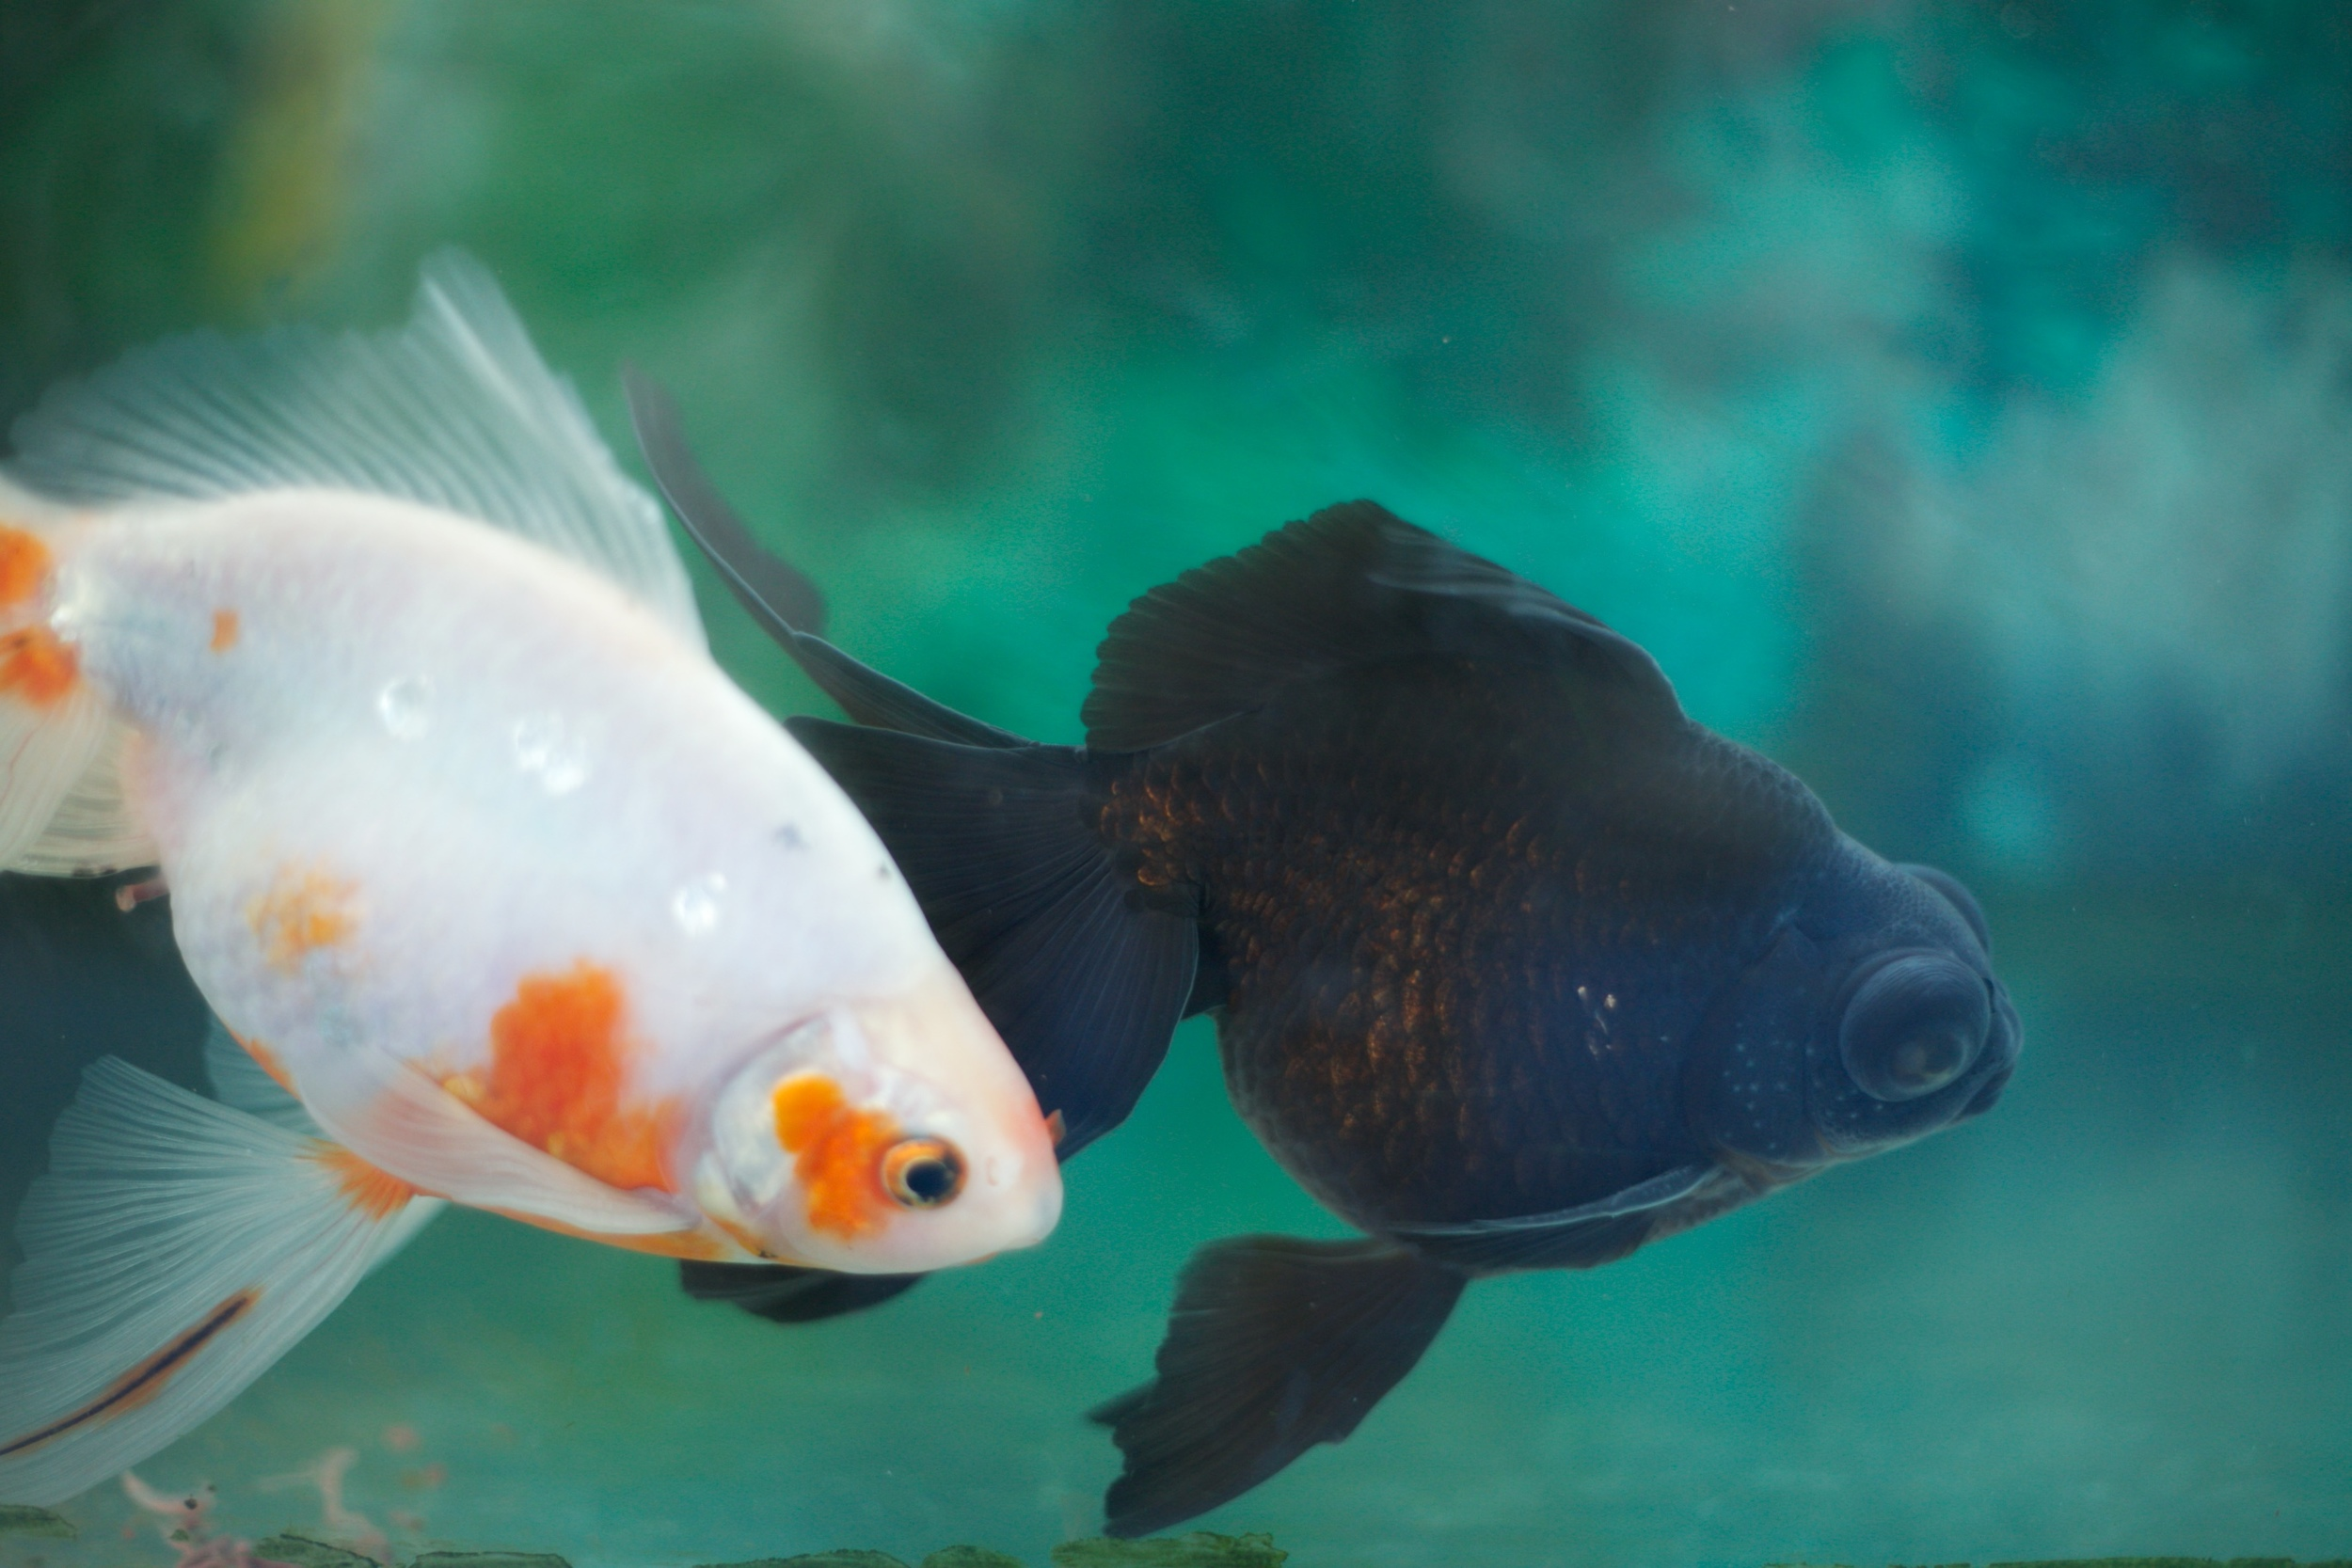 Goldfish in a tank, black one with big eyes.